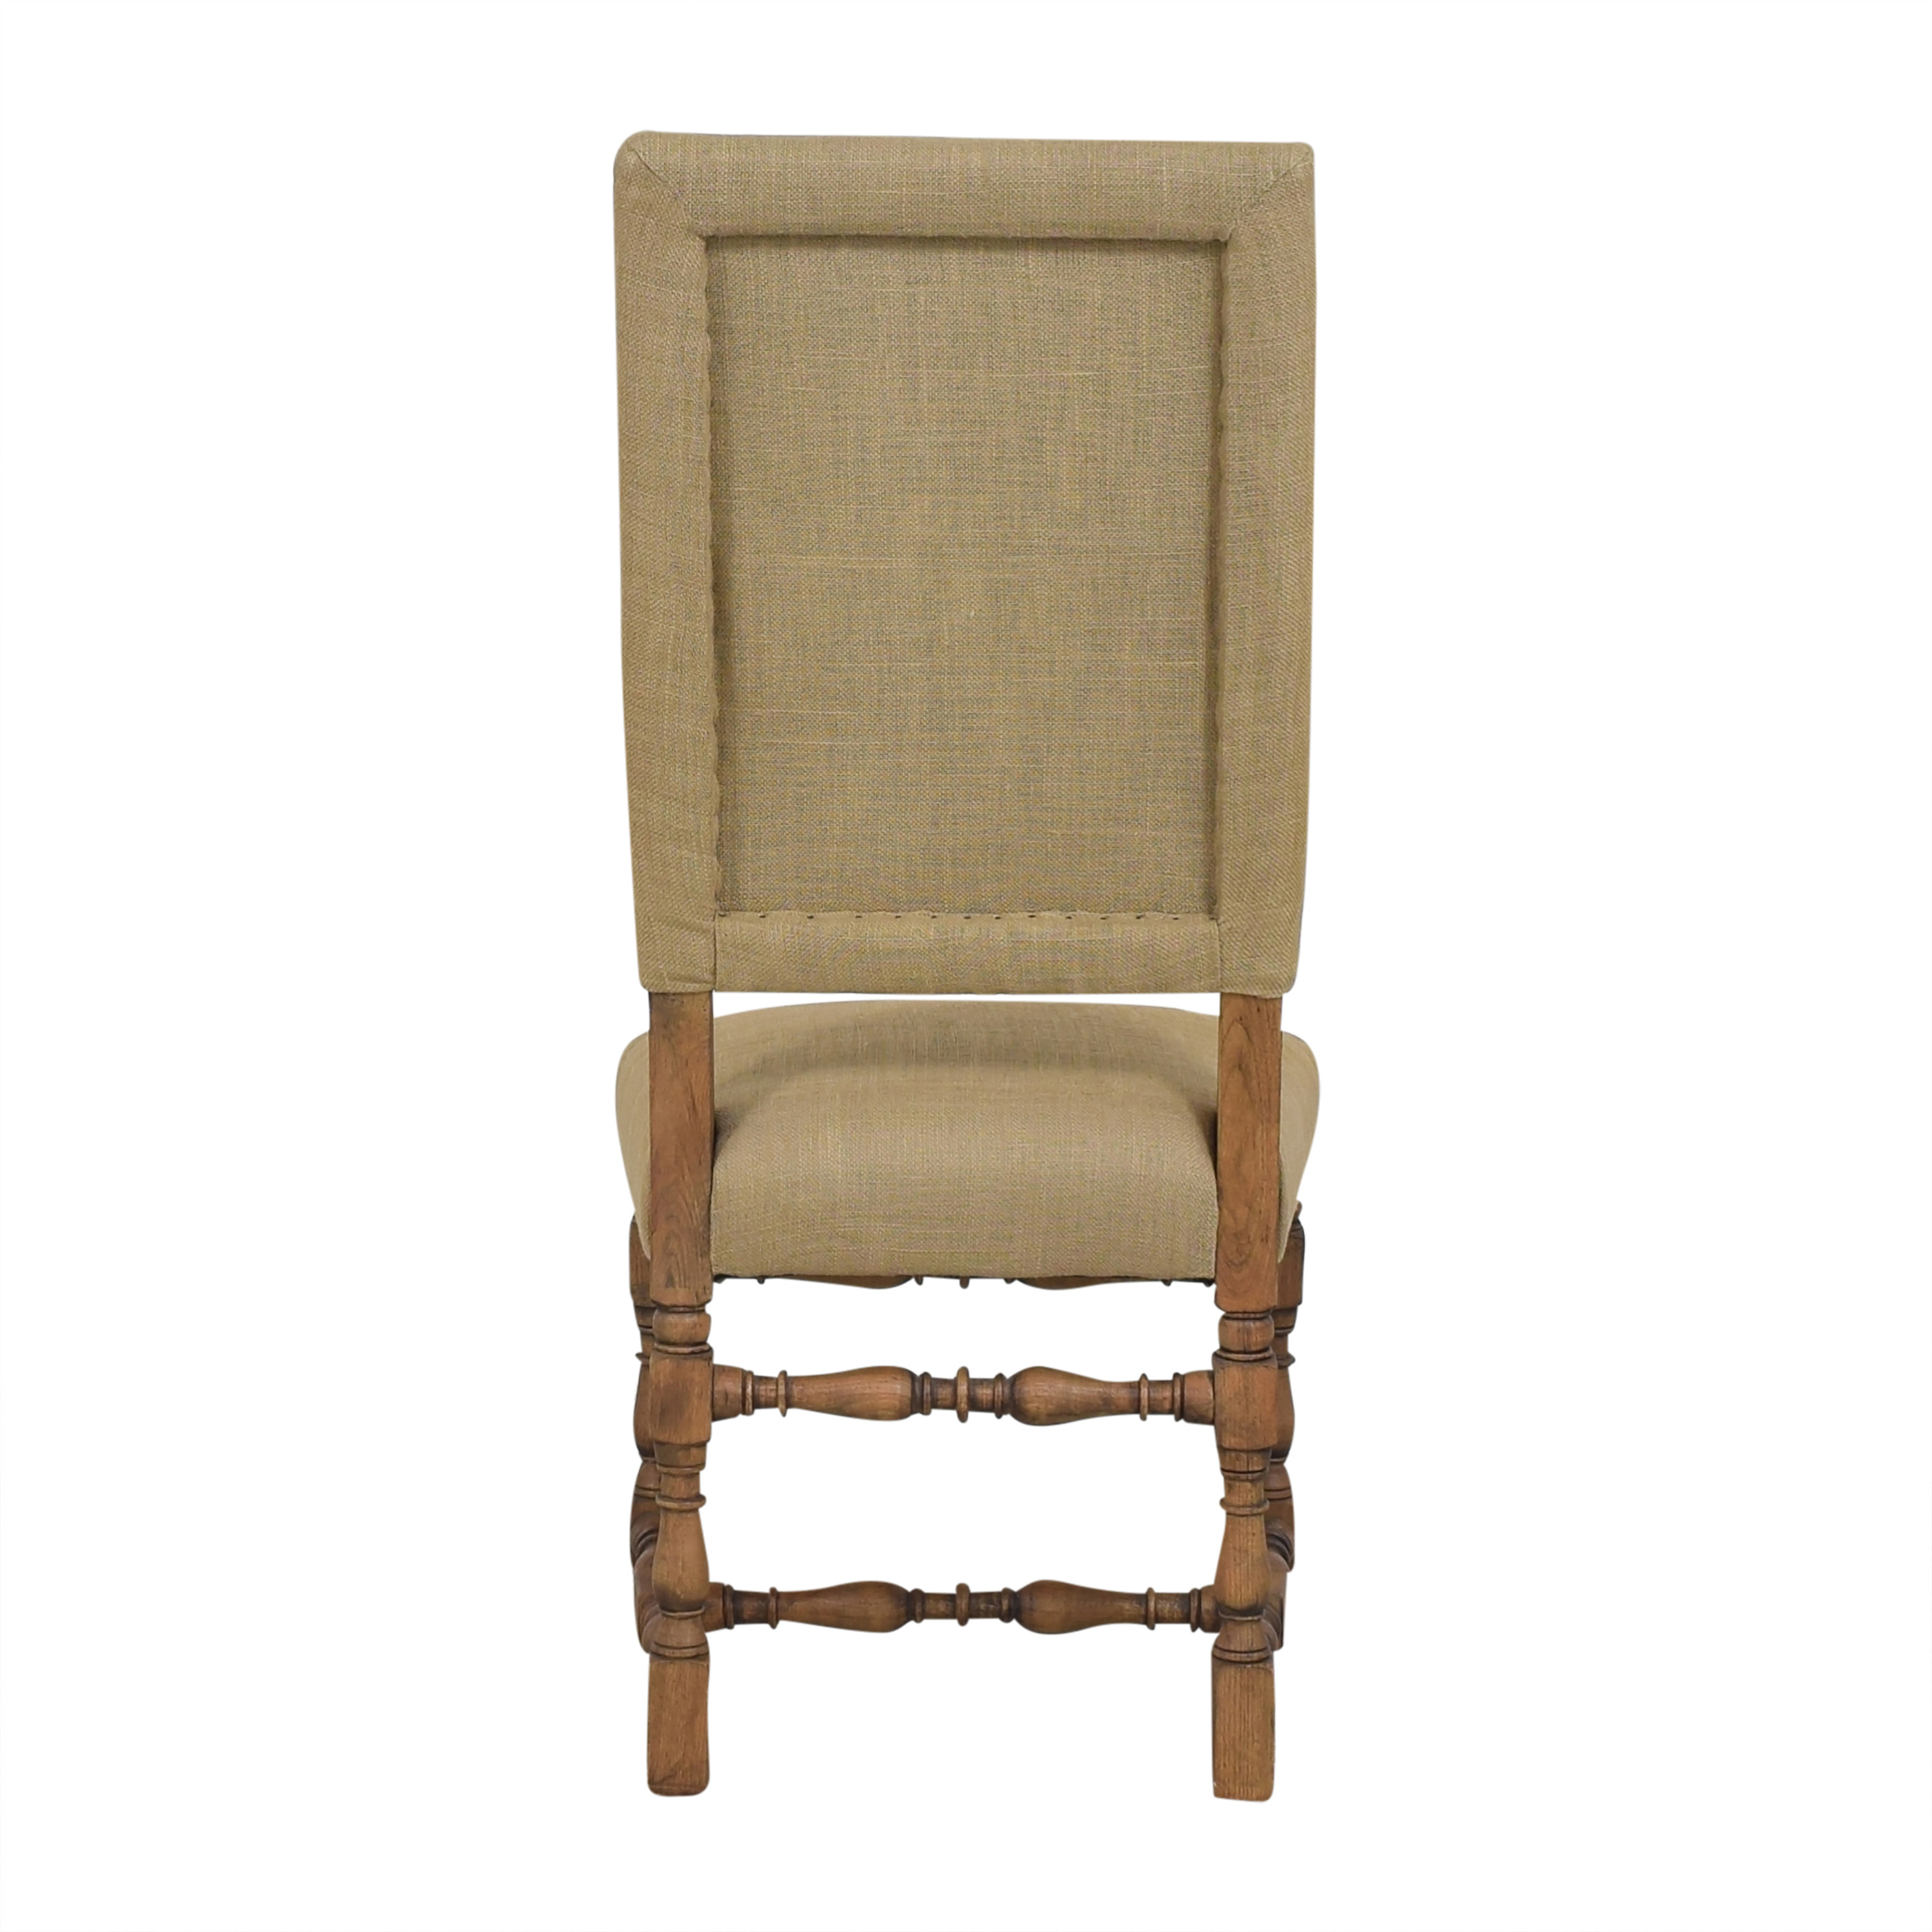 Restoration Hardware Restoration Hardware 1890 English Baroque Side Chair price